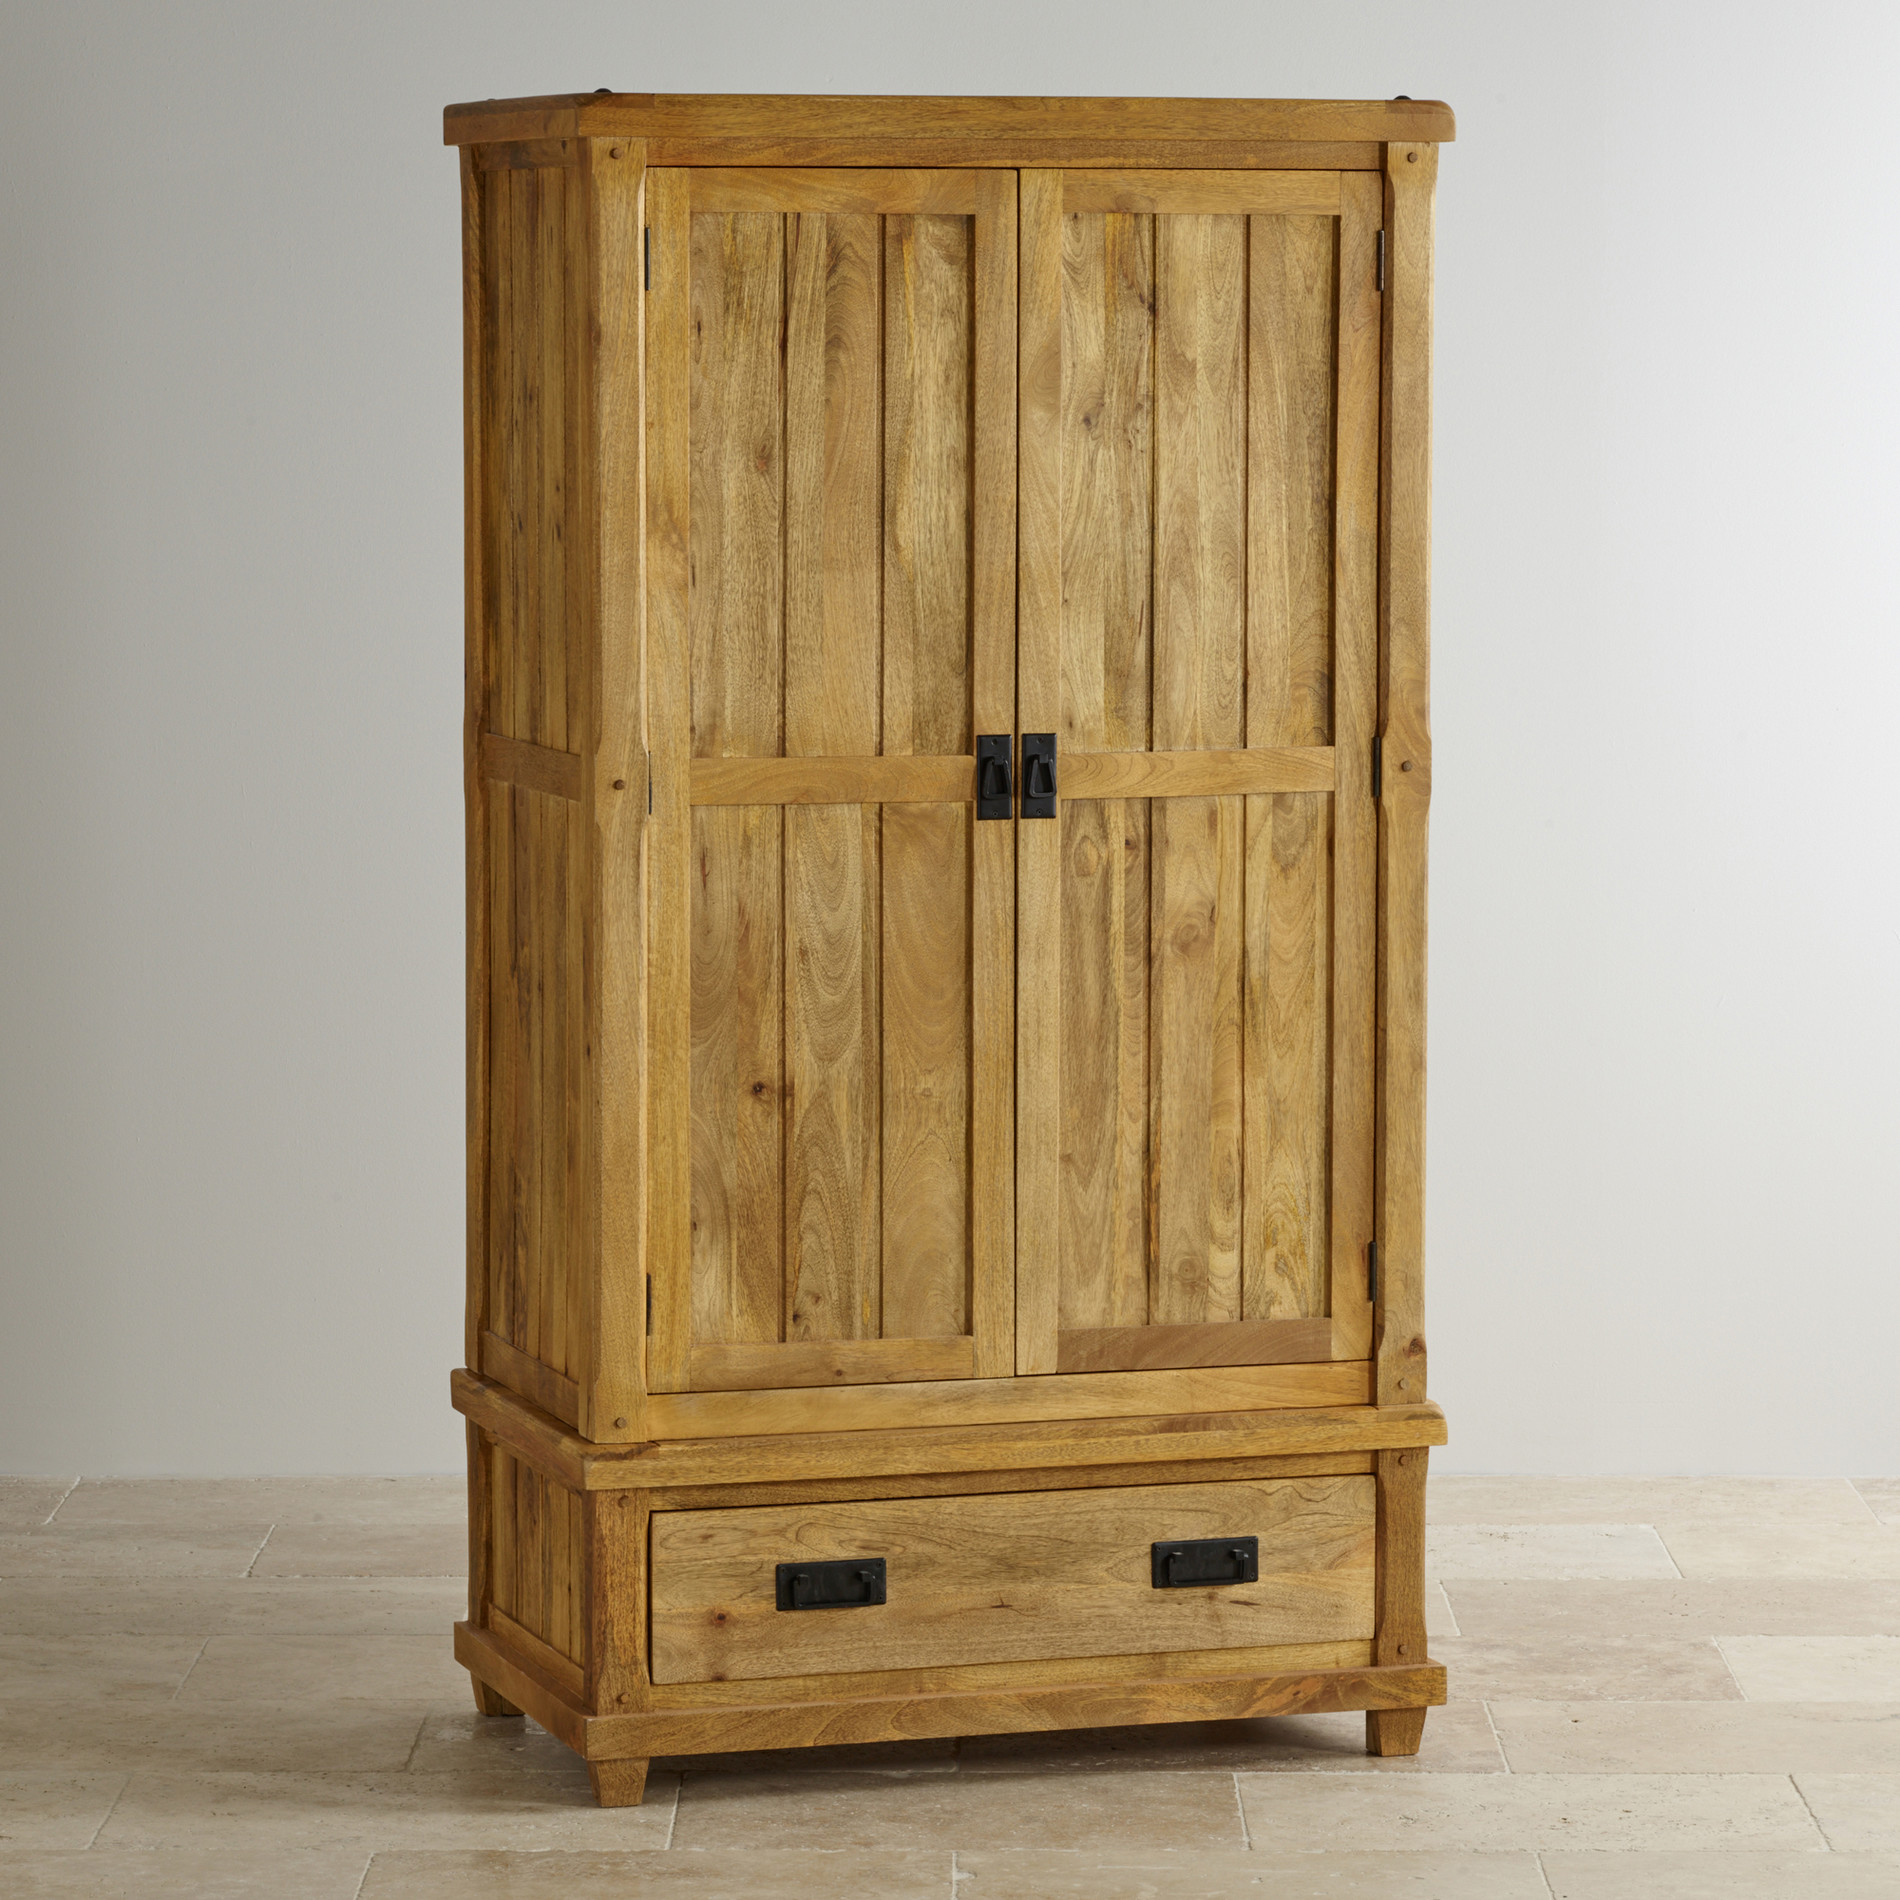 Mango Bedroom Furniture The Baku Light Range Natural Solid Mango Wood Furniture